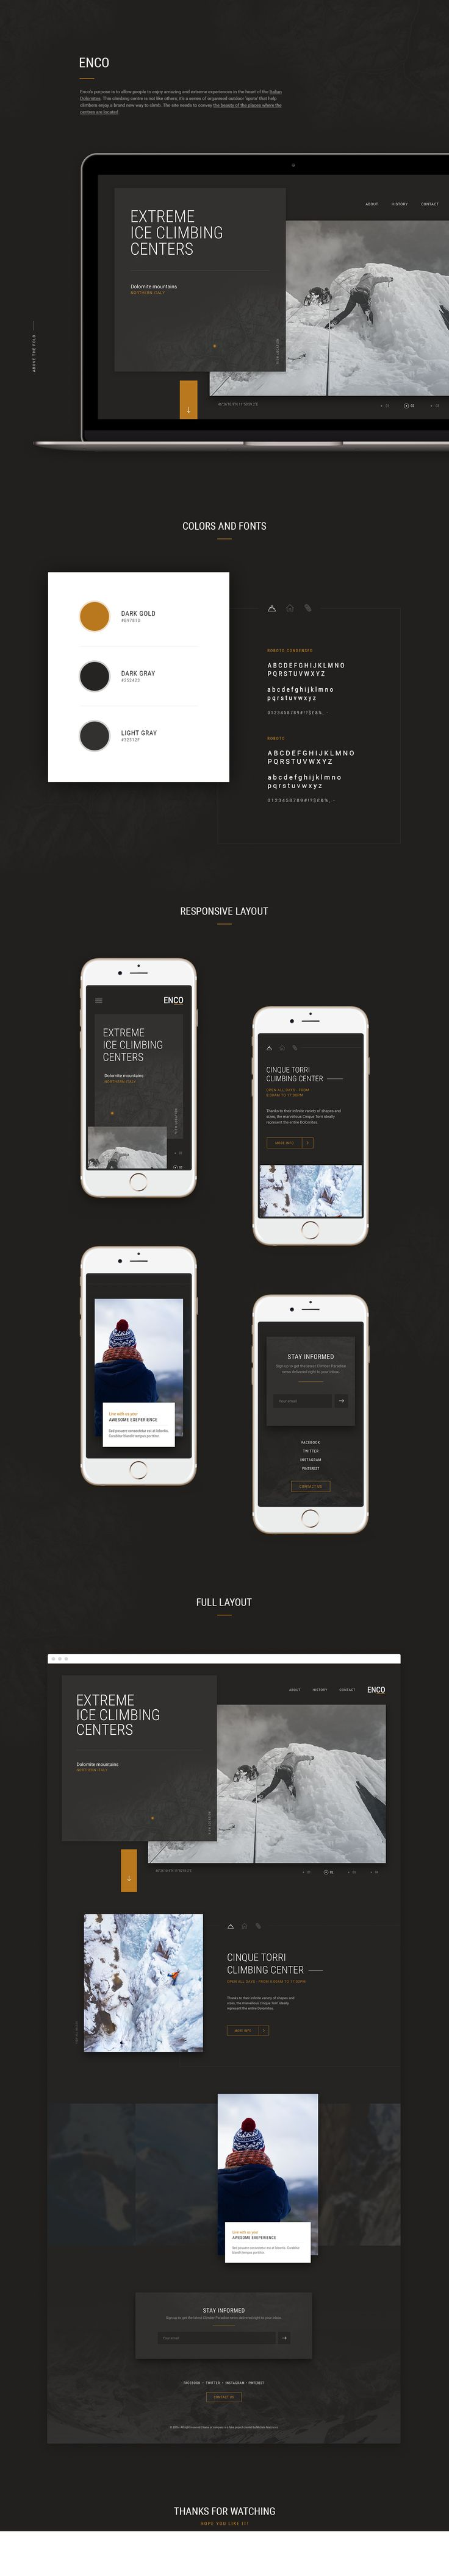 Enco  -  Extreme climbing centers on Behance